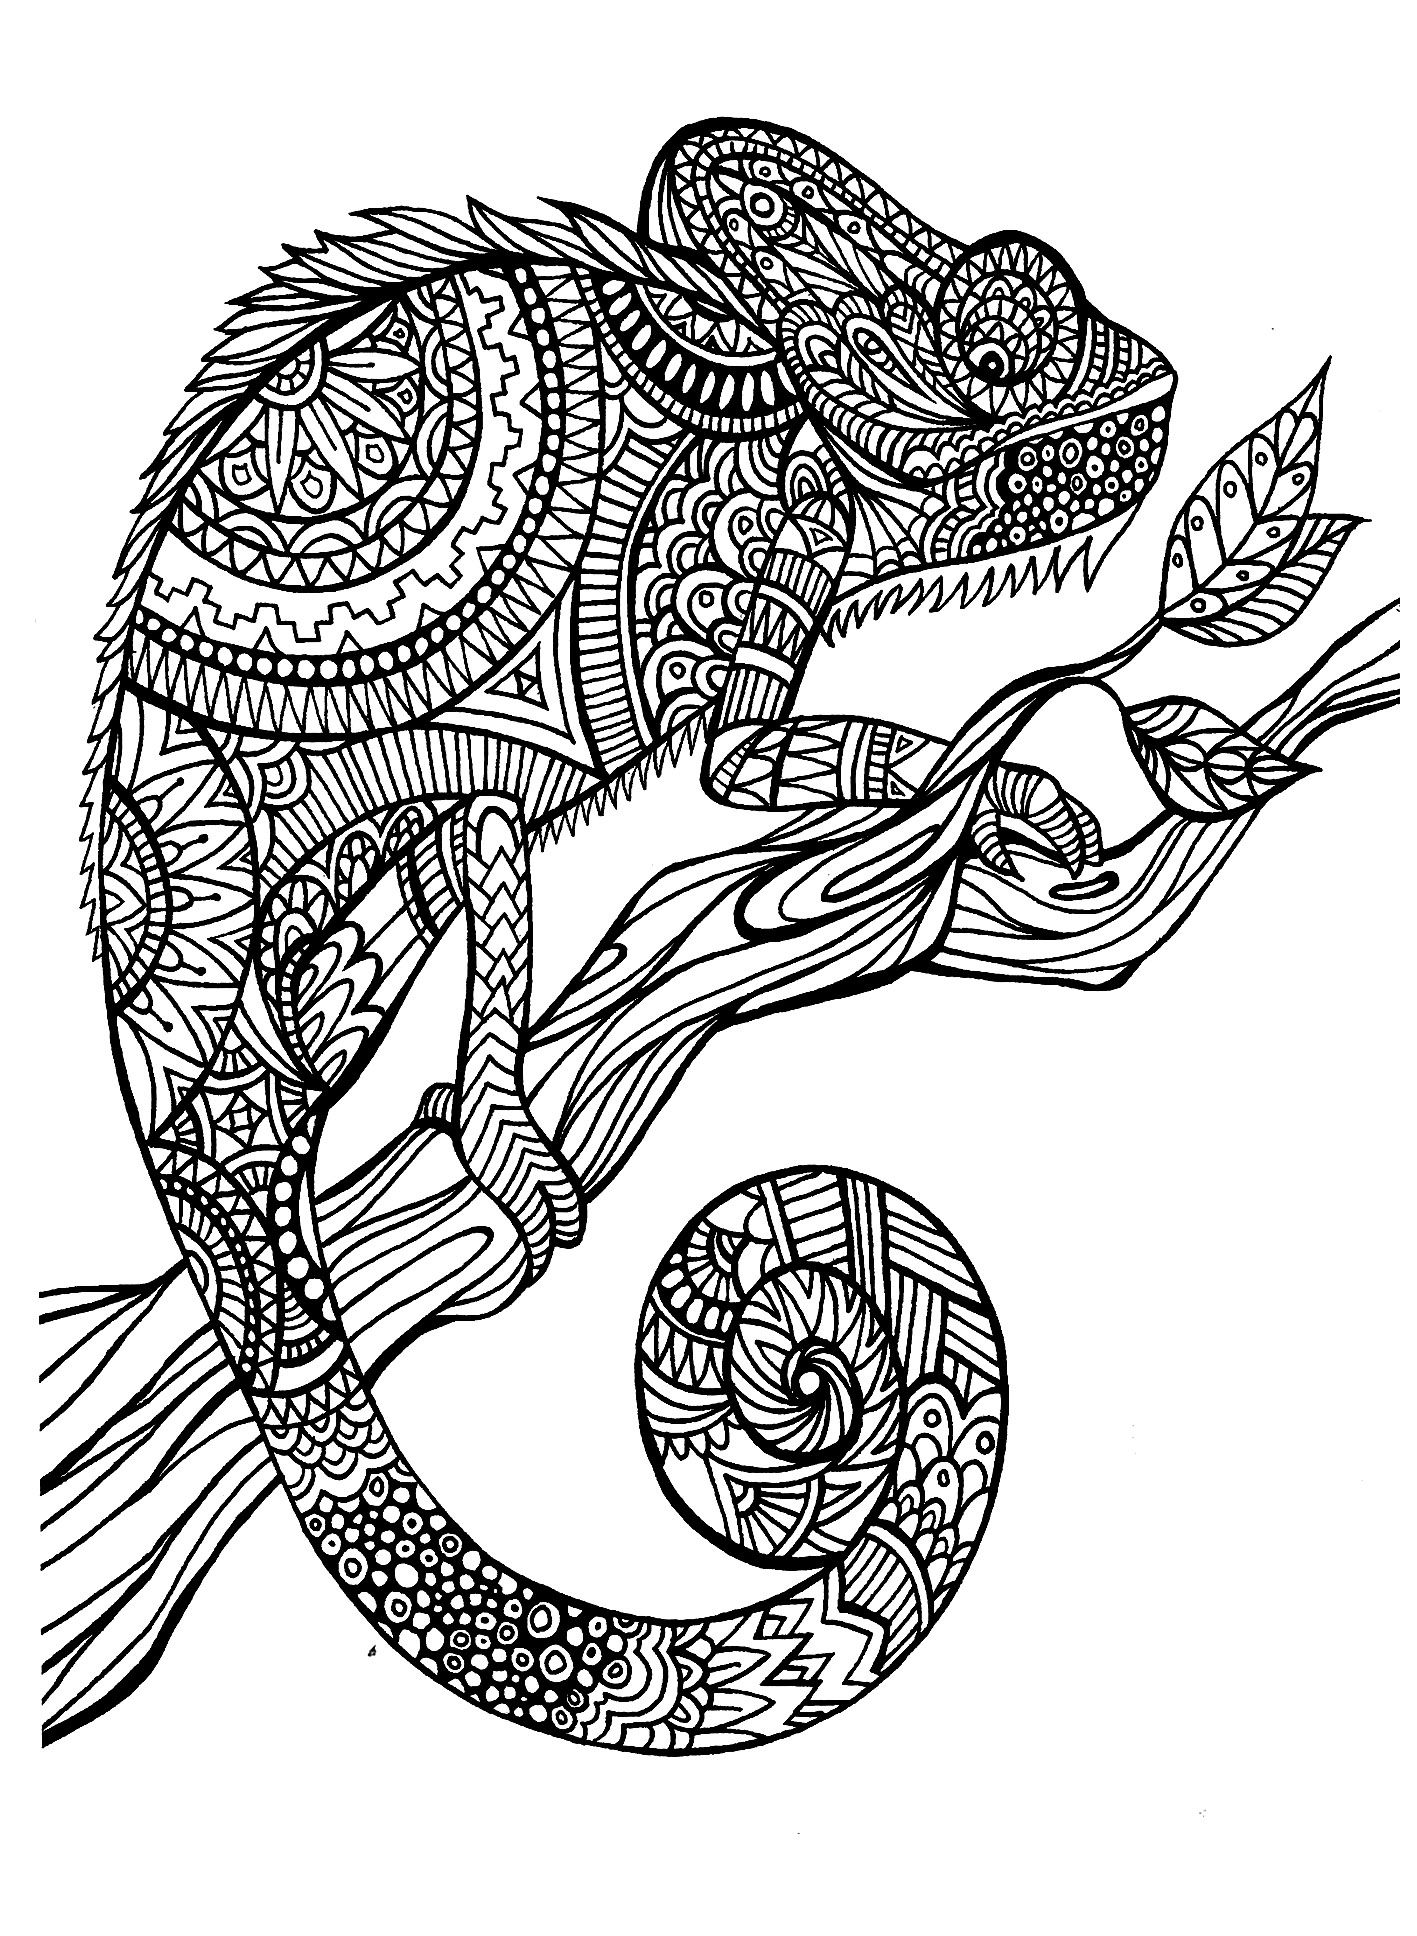 free coloring page coloring adult cameleon patterns a magnificien cameleon to color